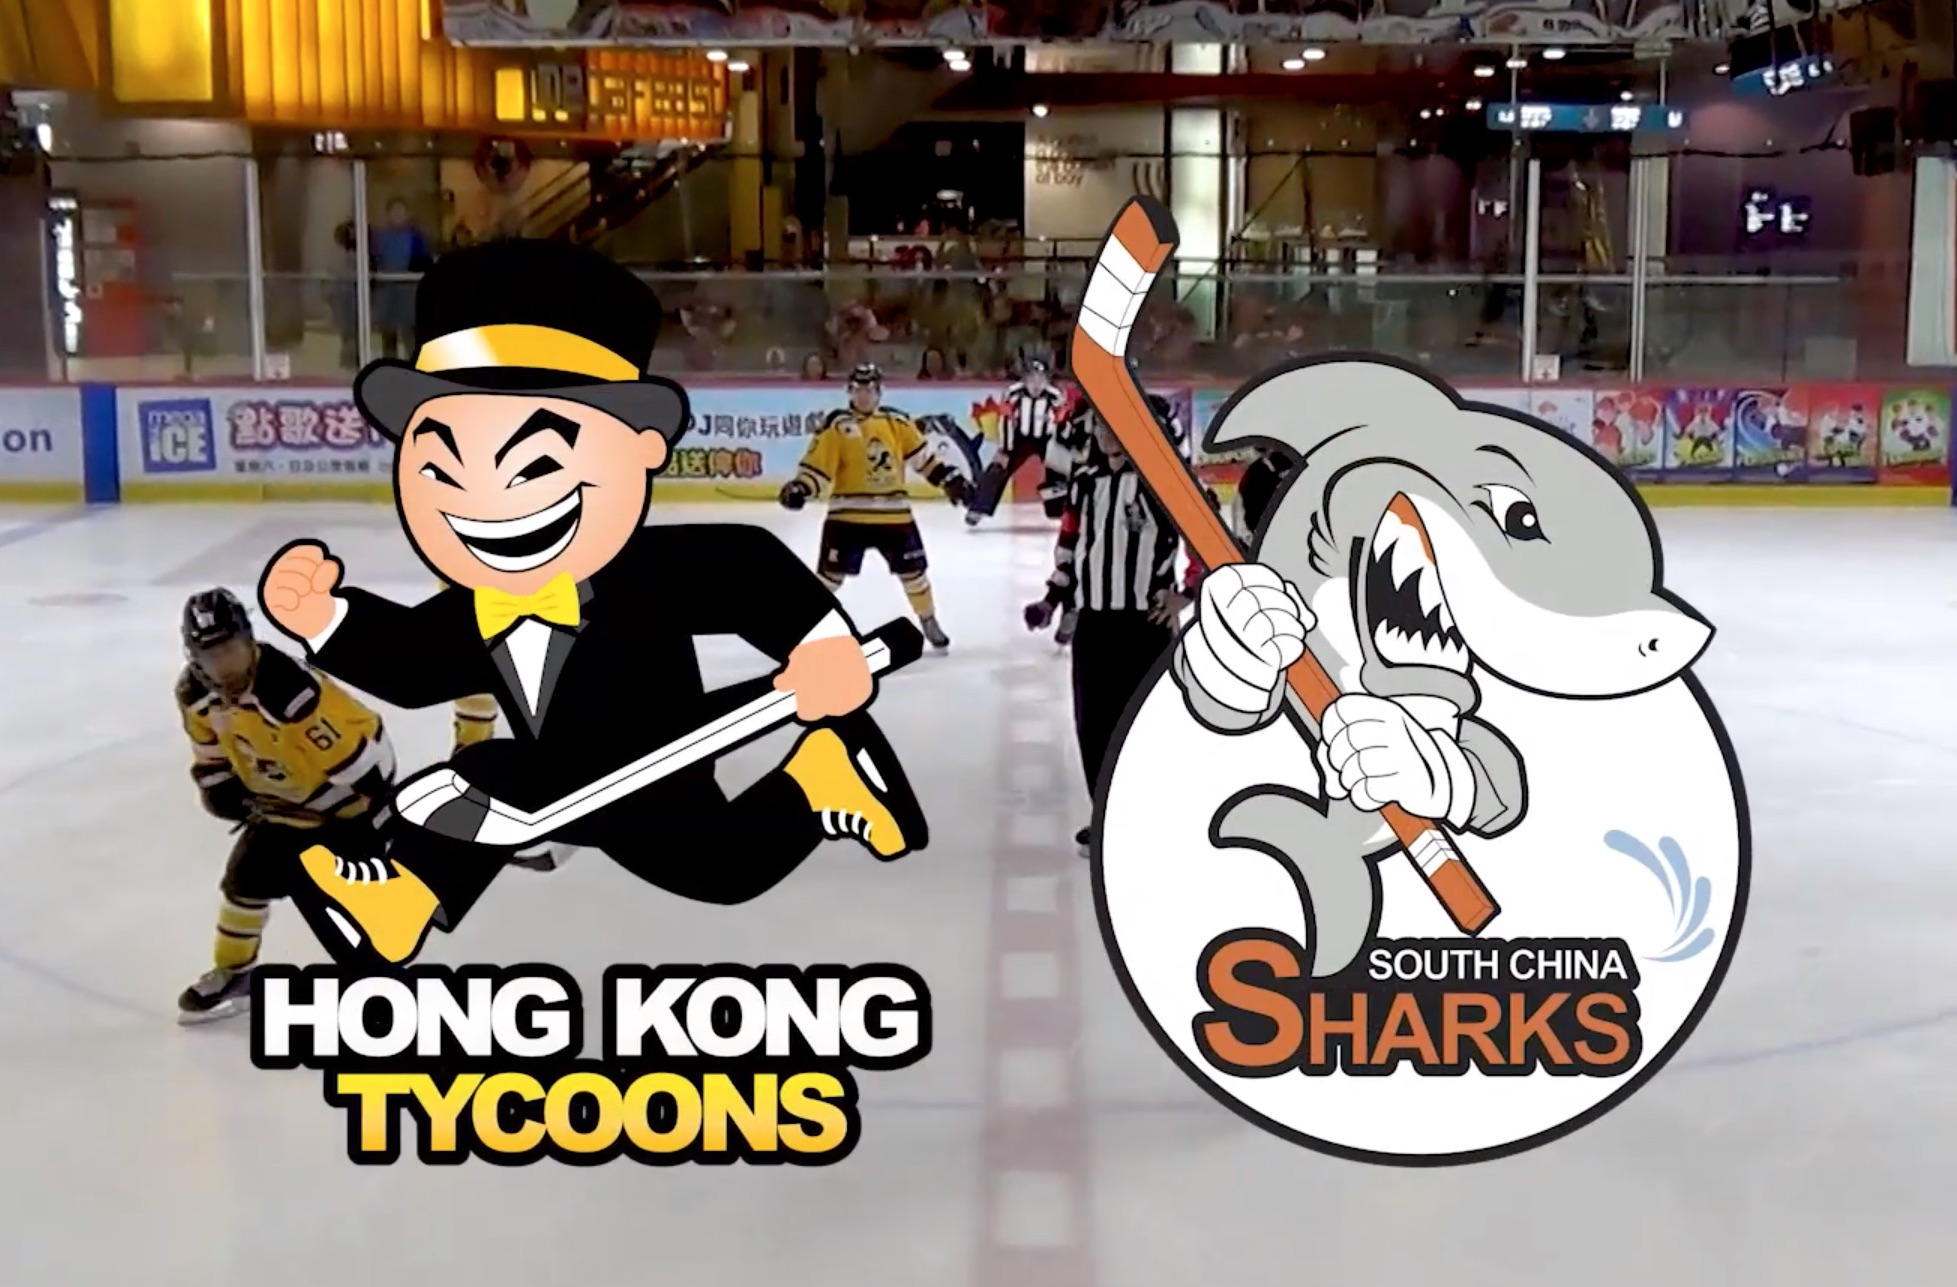 Hong Kong Tycoons VS Scotiabank South China Sharks